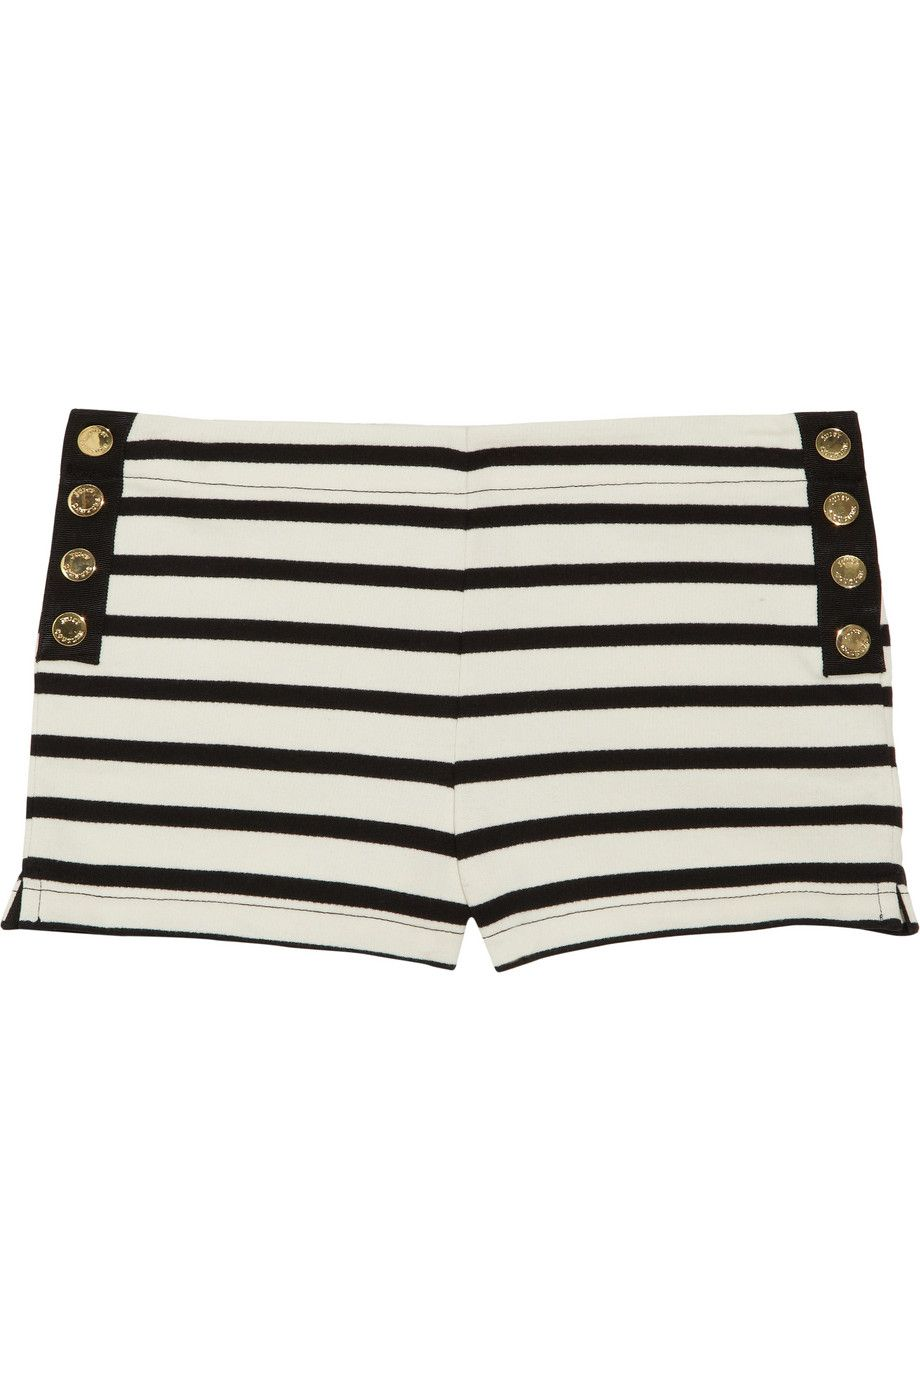 Juicy Couture Striped Cotton Shorts